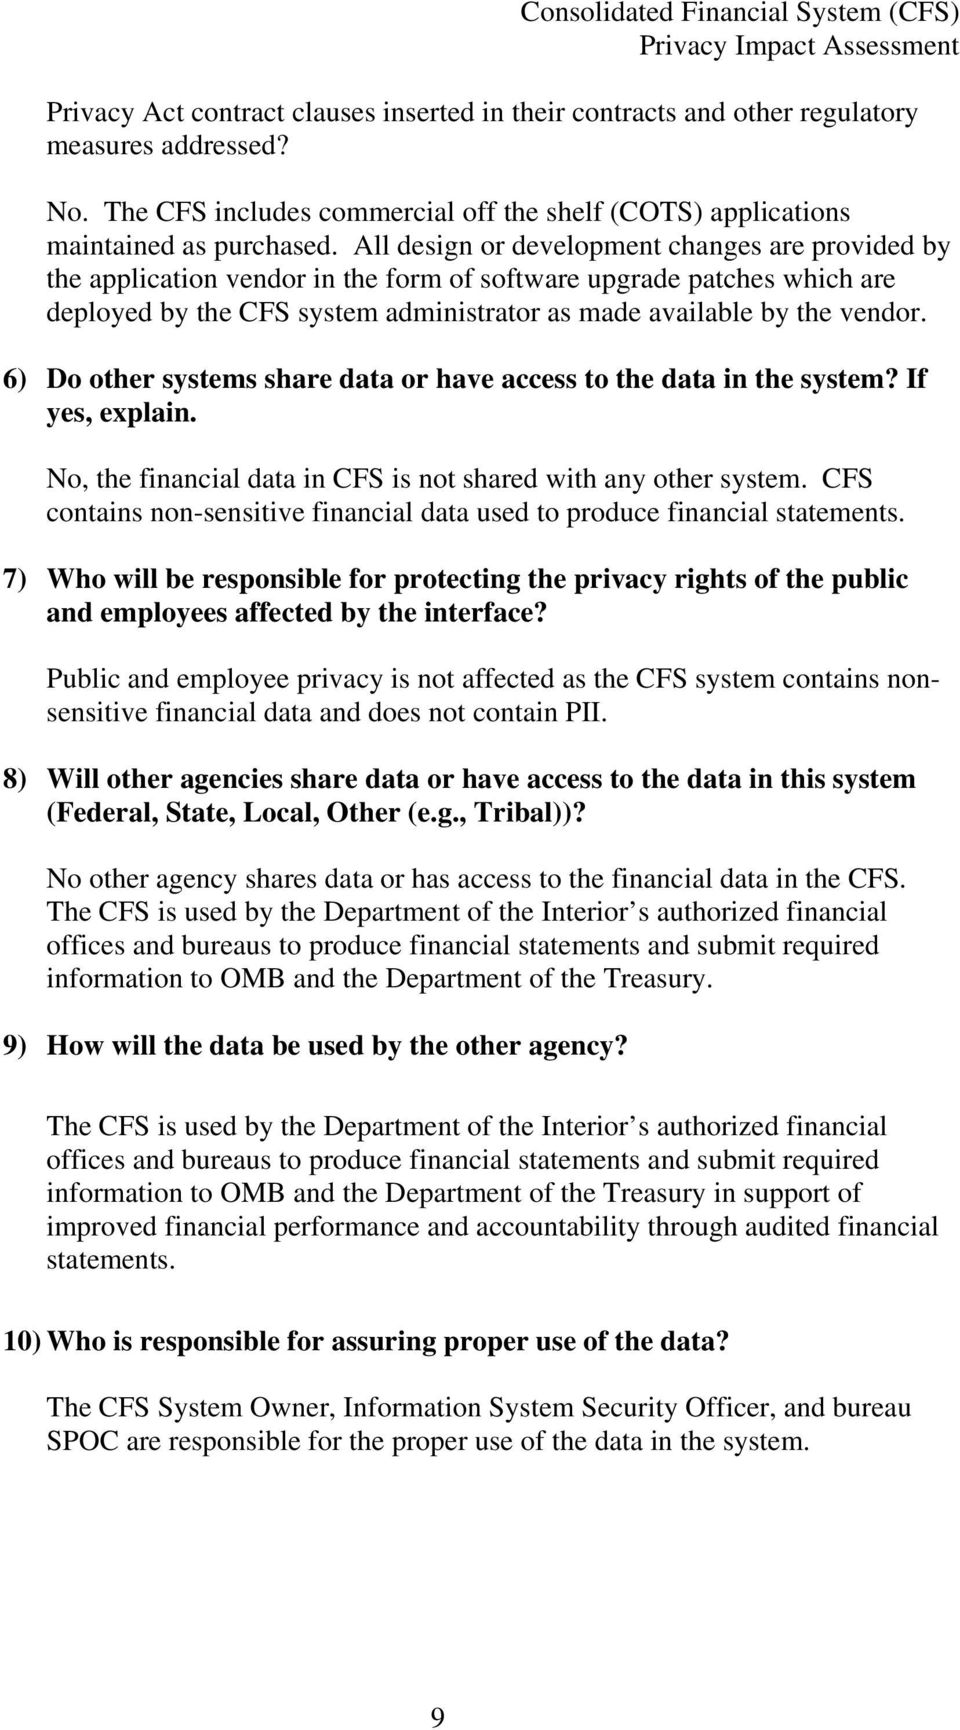 6) Do other systems share data or have access to the data in the system? If yes, explain. No, the financial data in CFS is not shared with any other system.